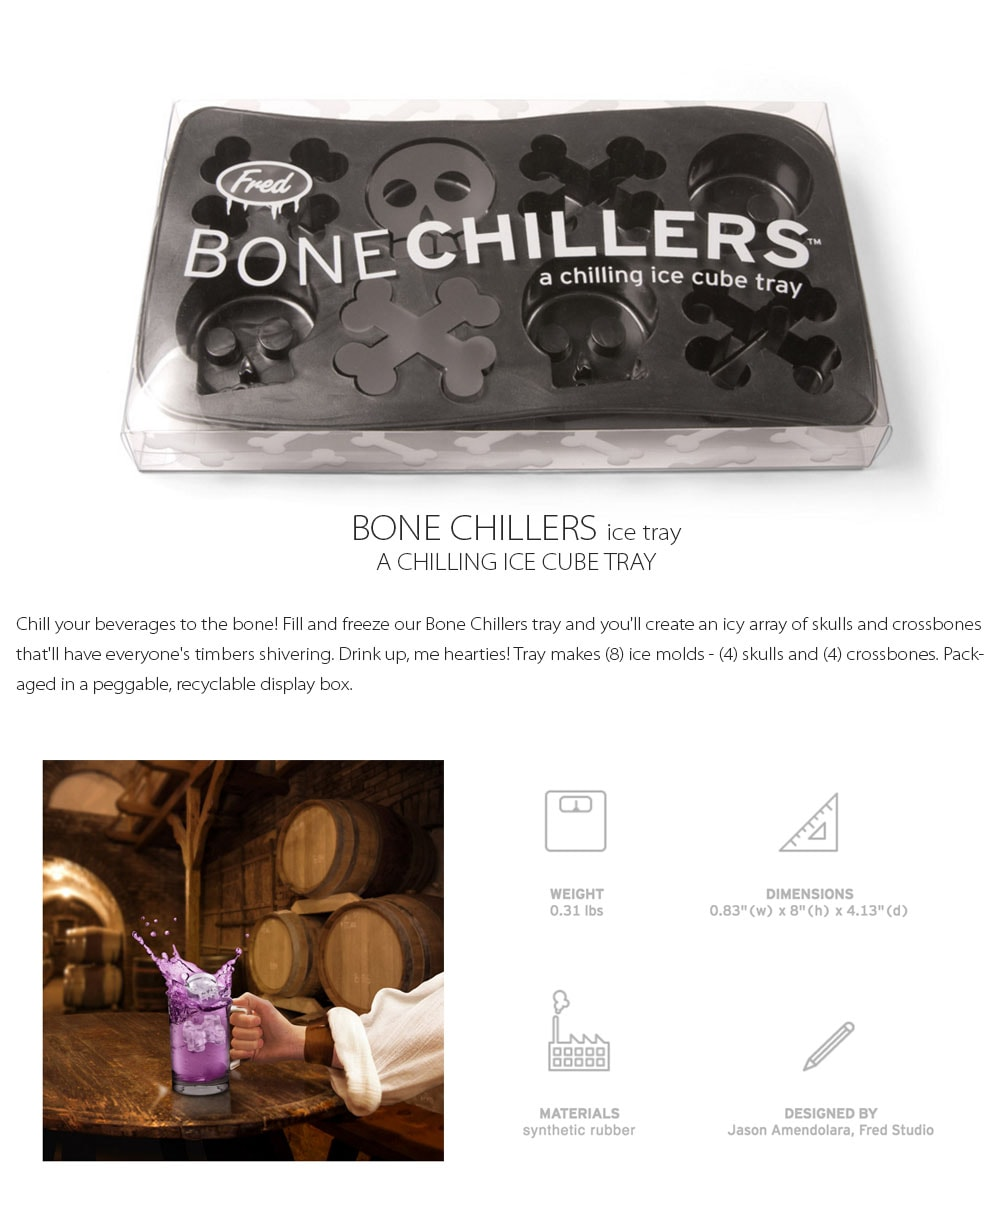 Bone Chillers ice tray A Chilling Ice Cube Tray